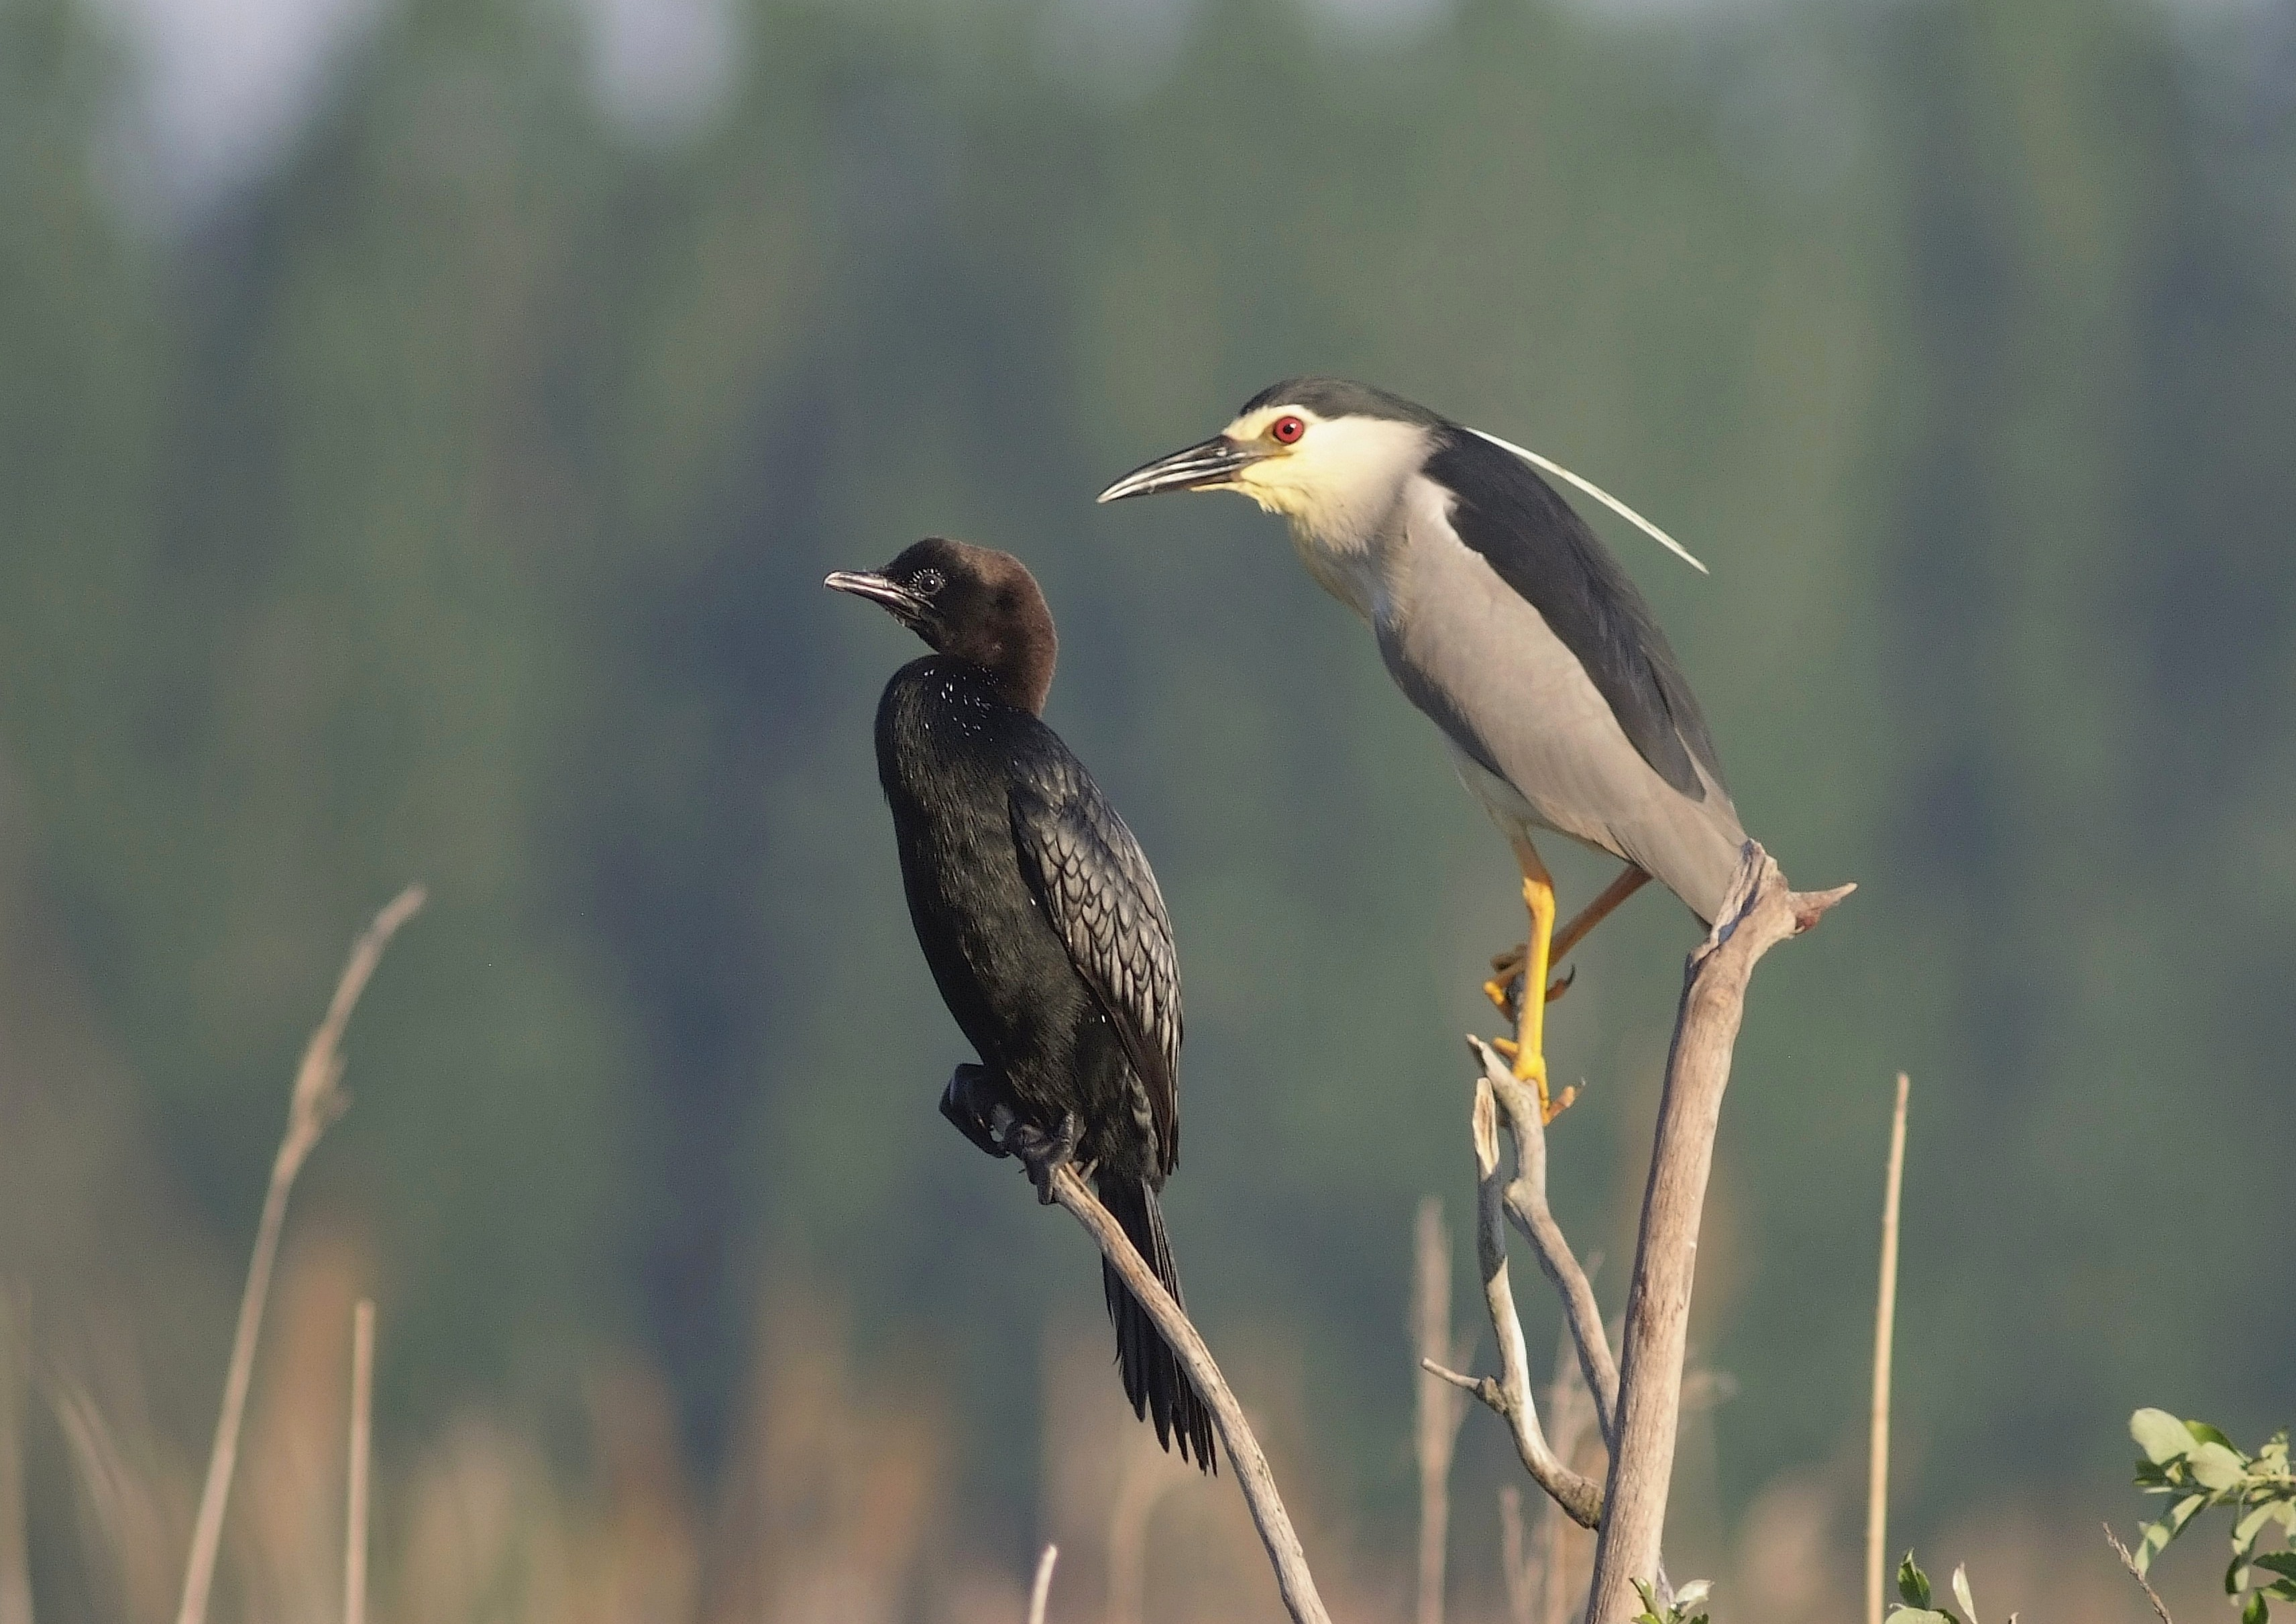 Microcarbo pygmeus & Nycticorax nycticorax